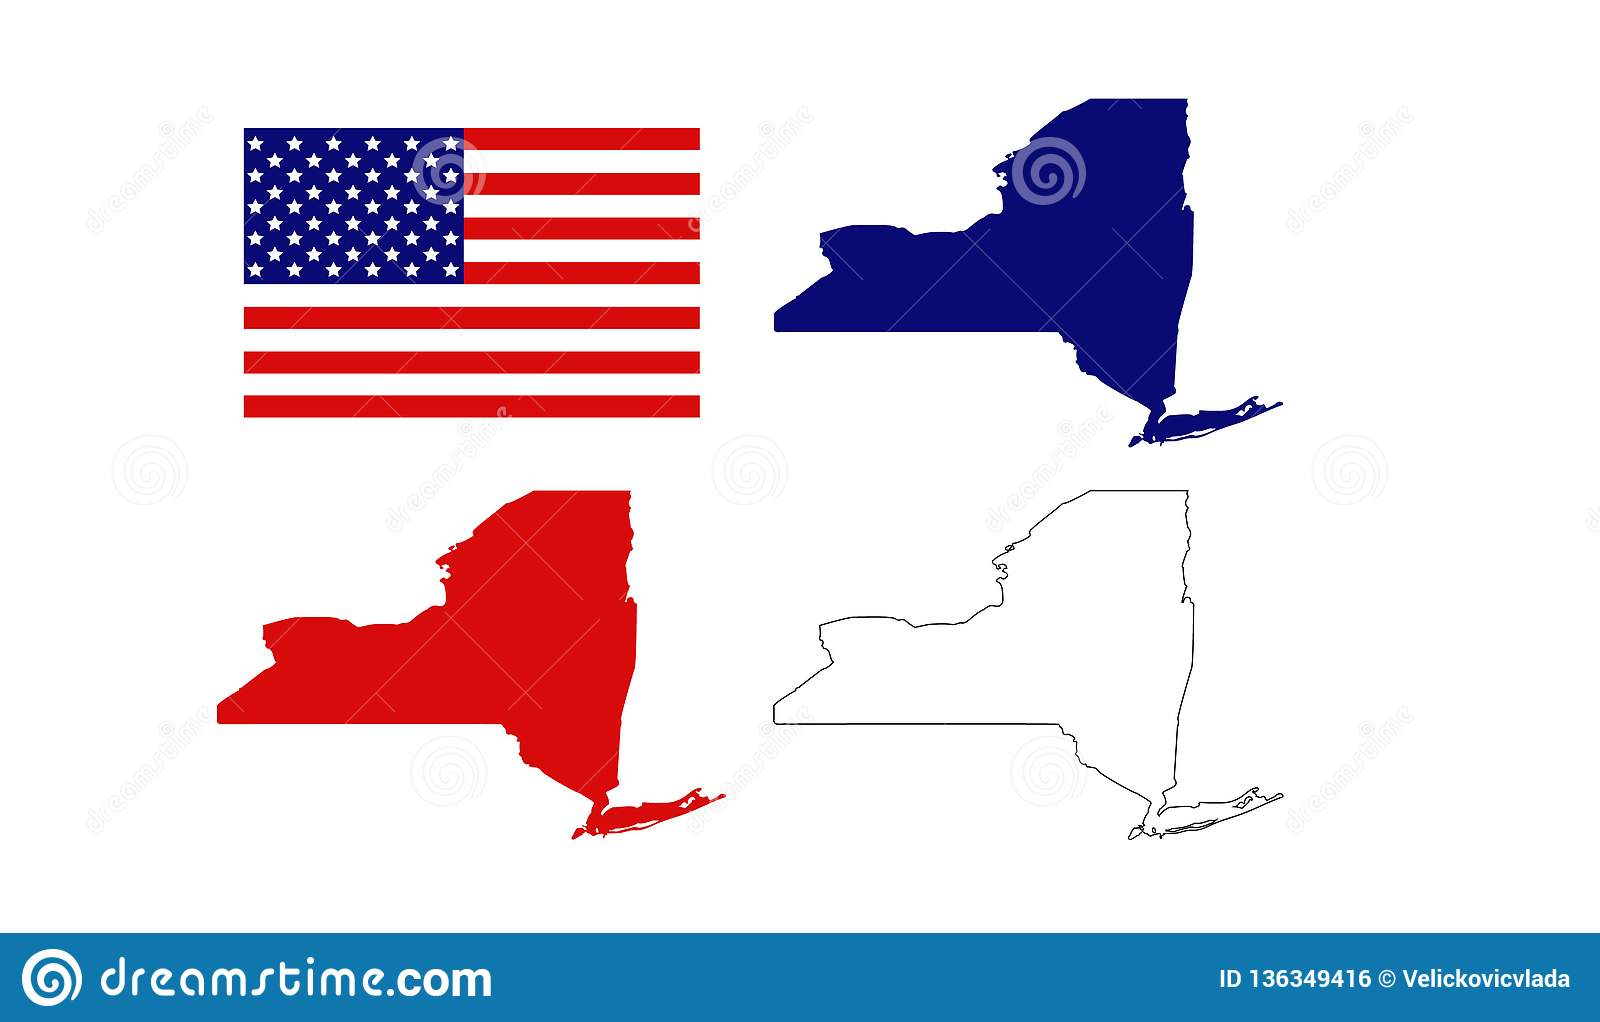 New York Maps With USA Flag - State In The Northeastern ...